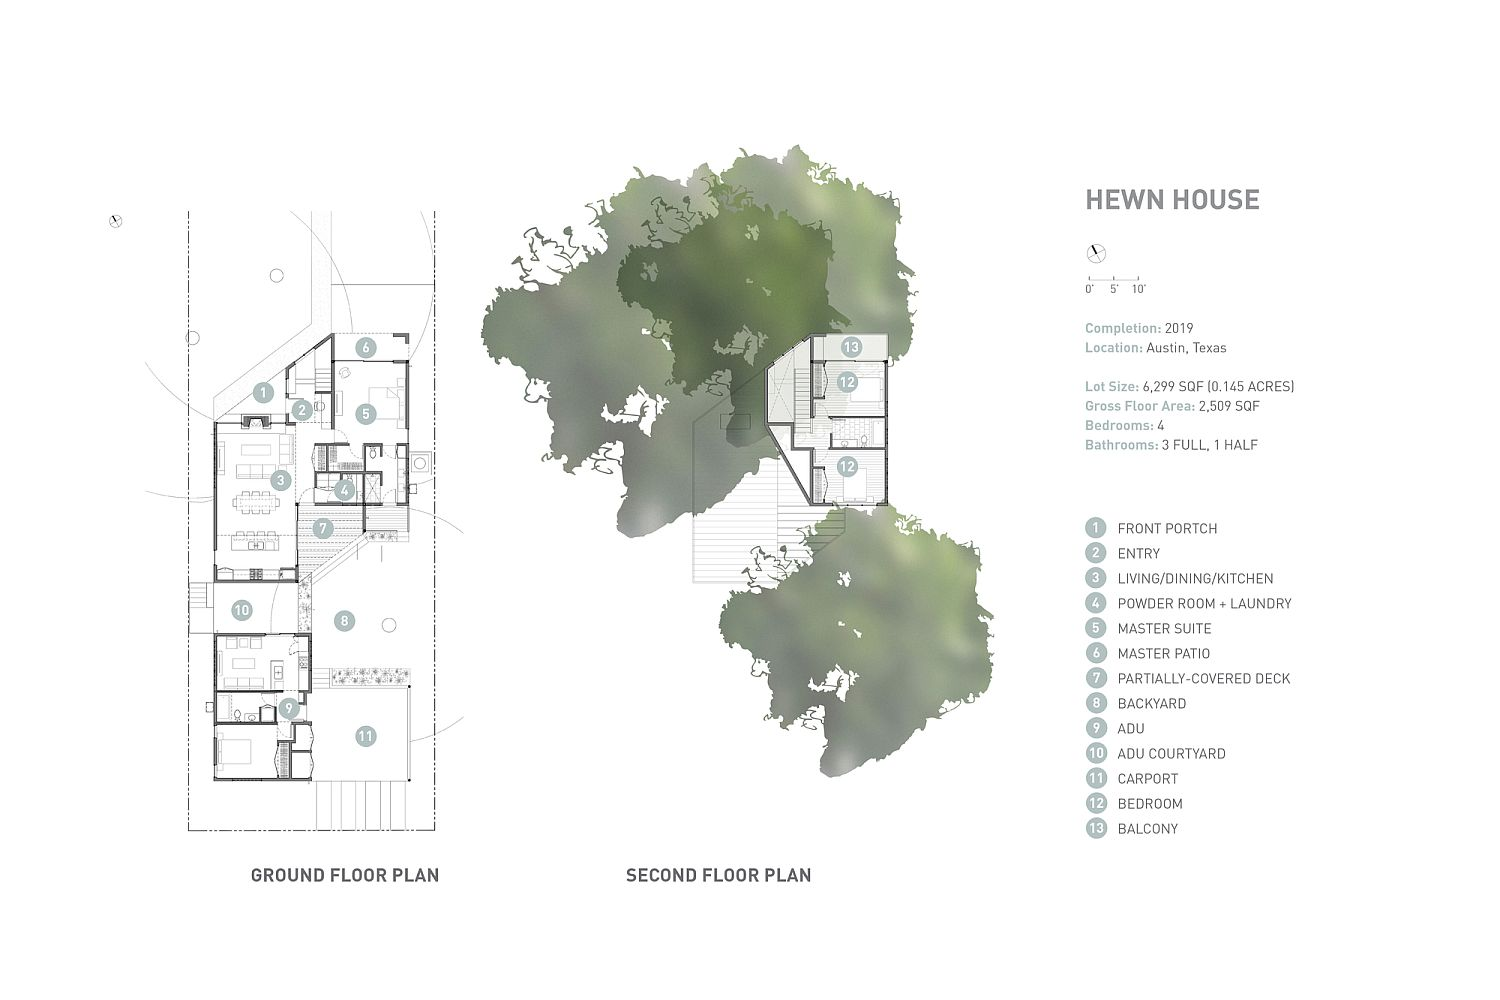 Floor plan of the Hewn House in Austin